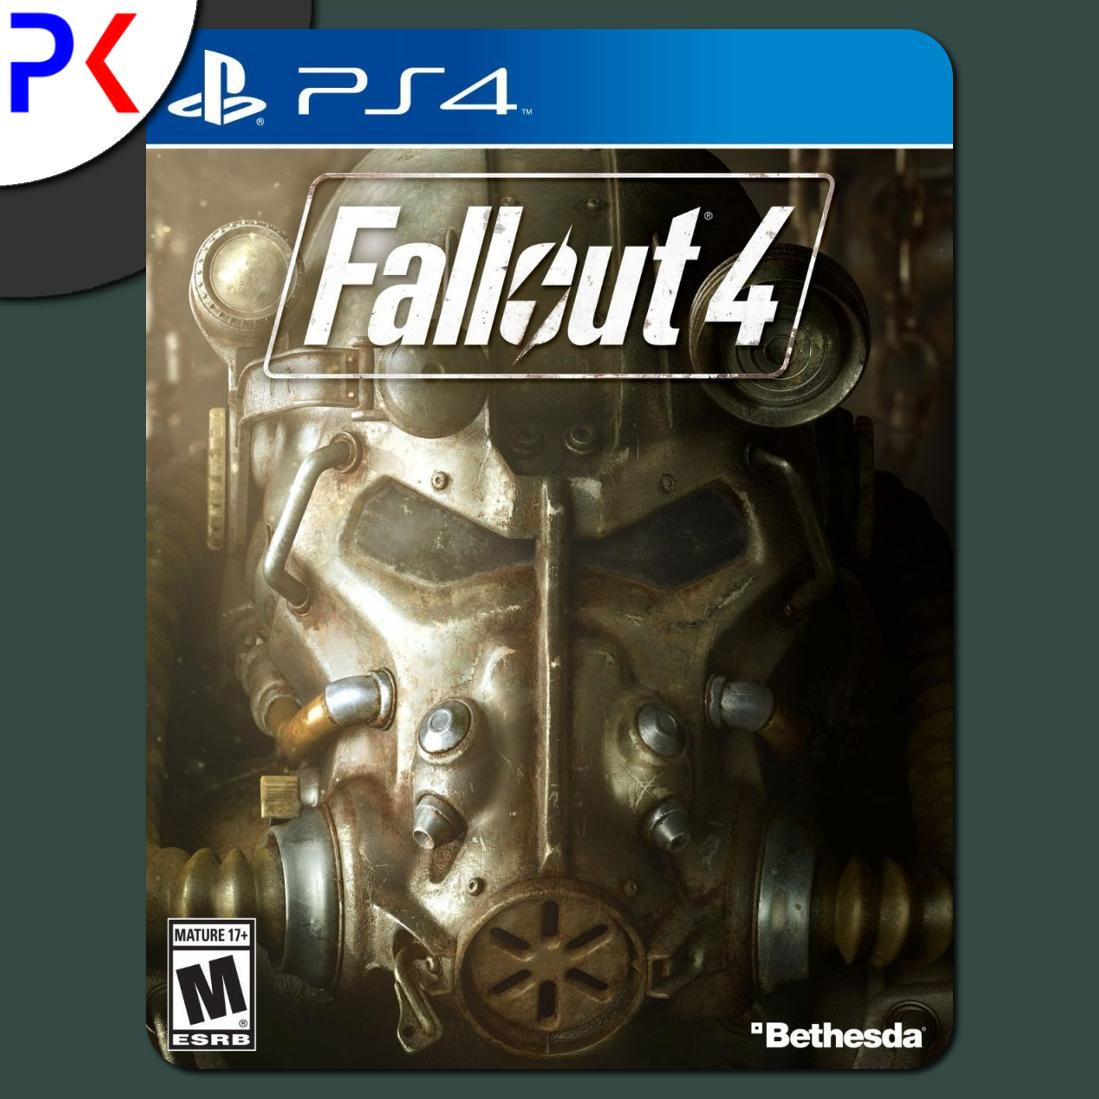 PS4 Fallout 4 (R1)